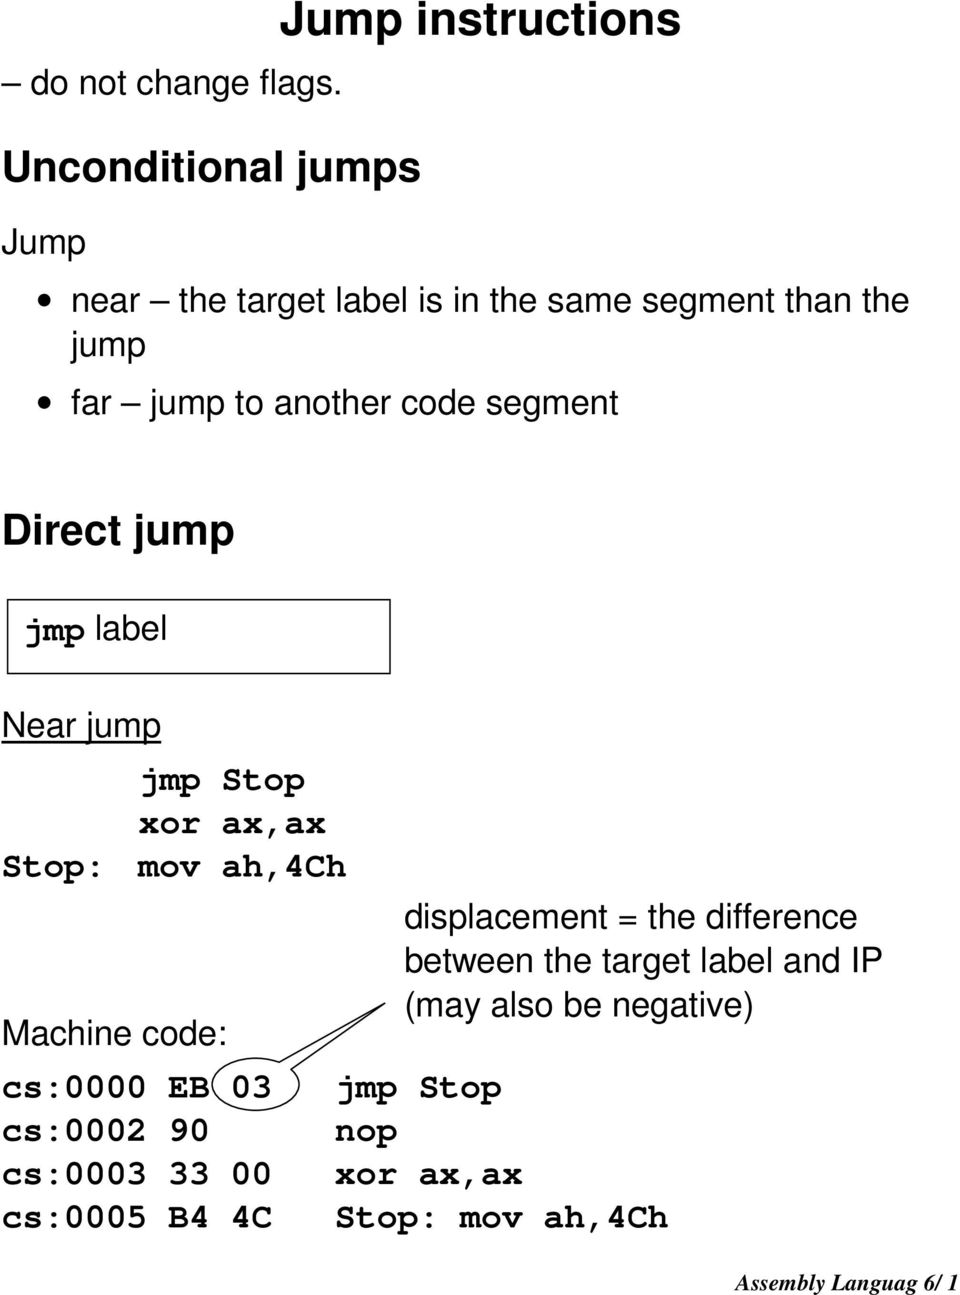 jump instruction in assembly language